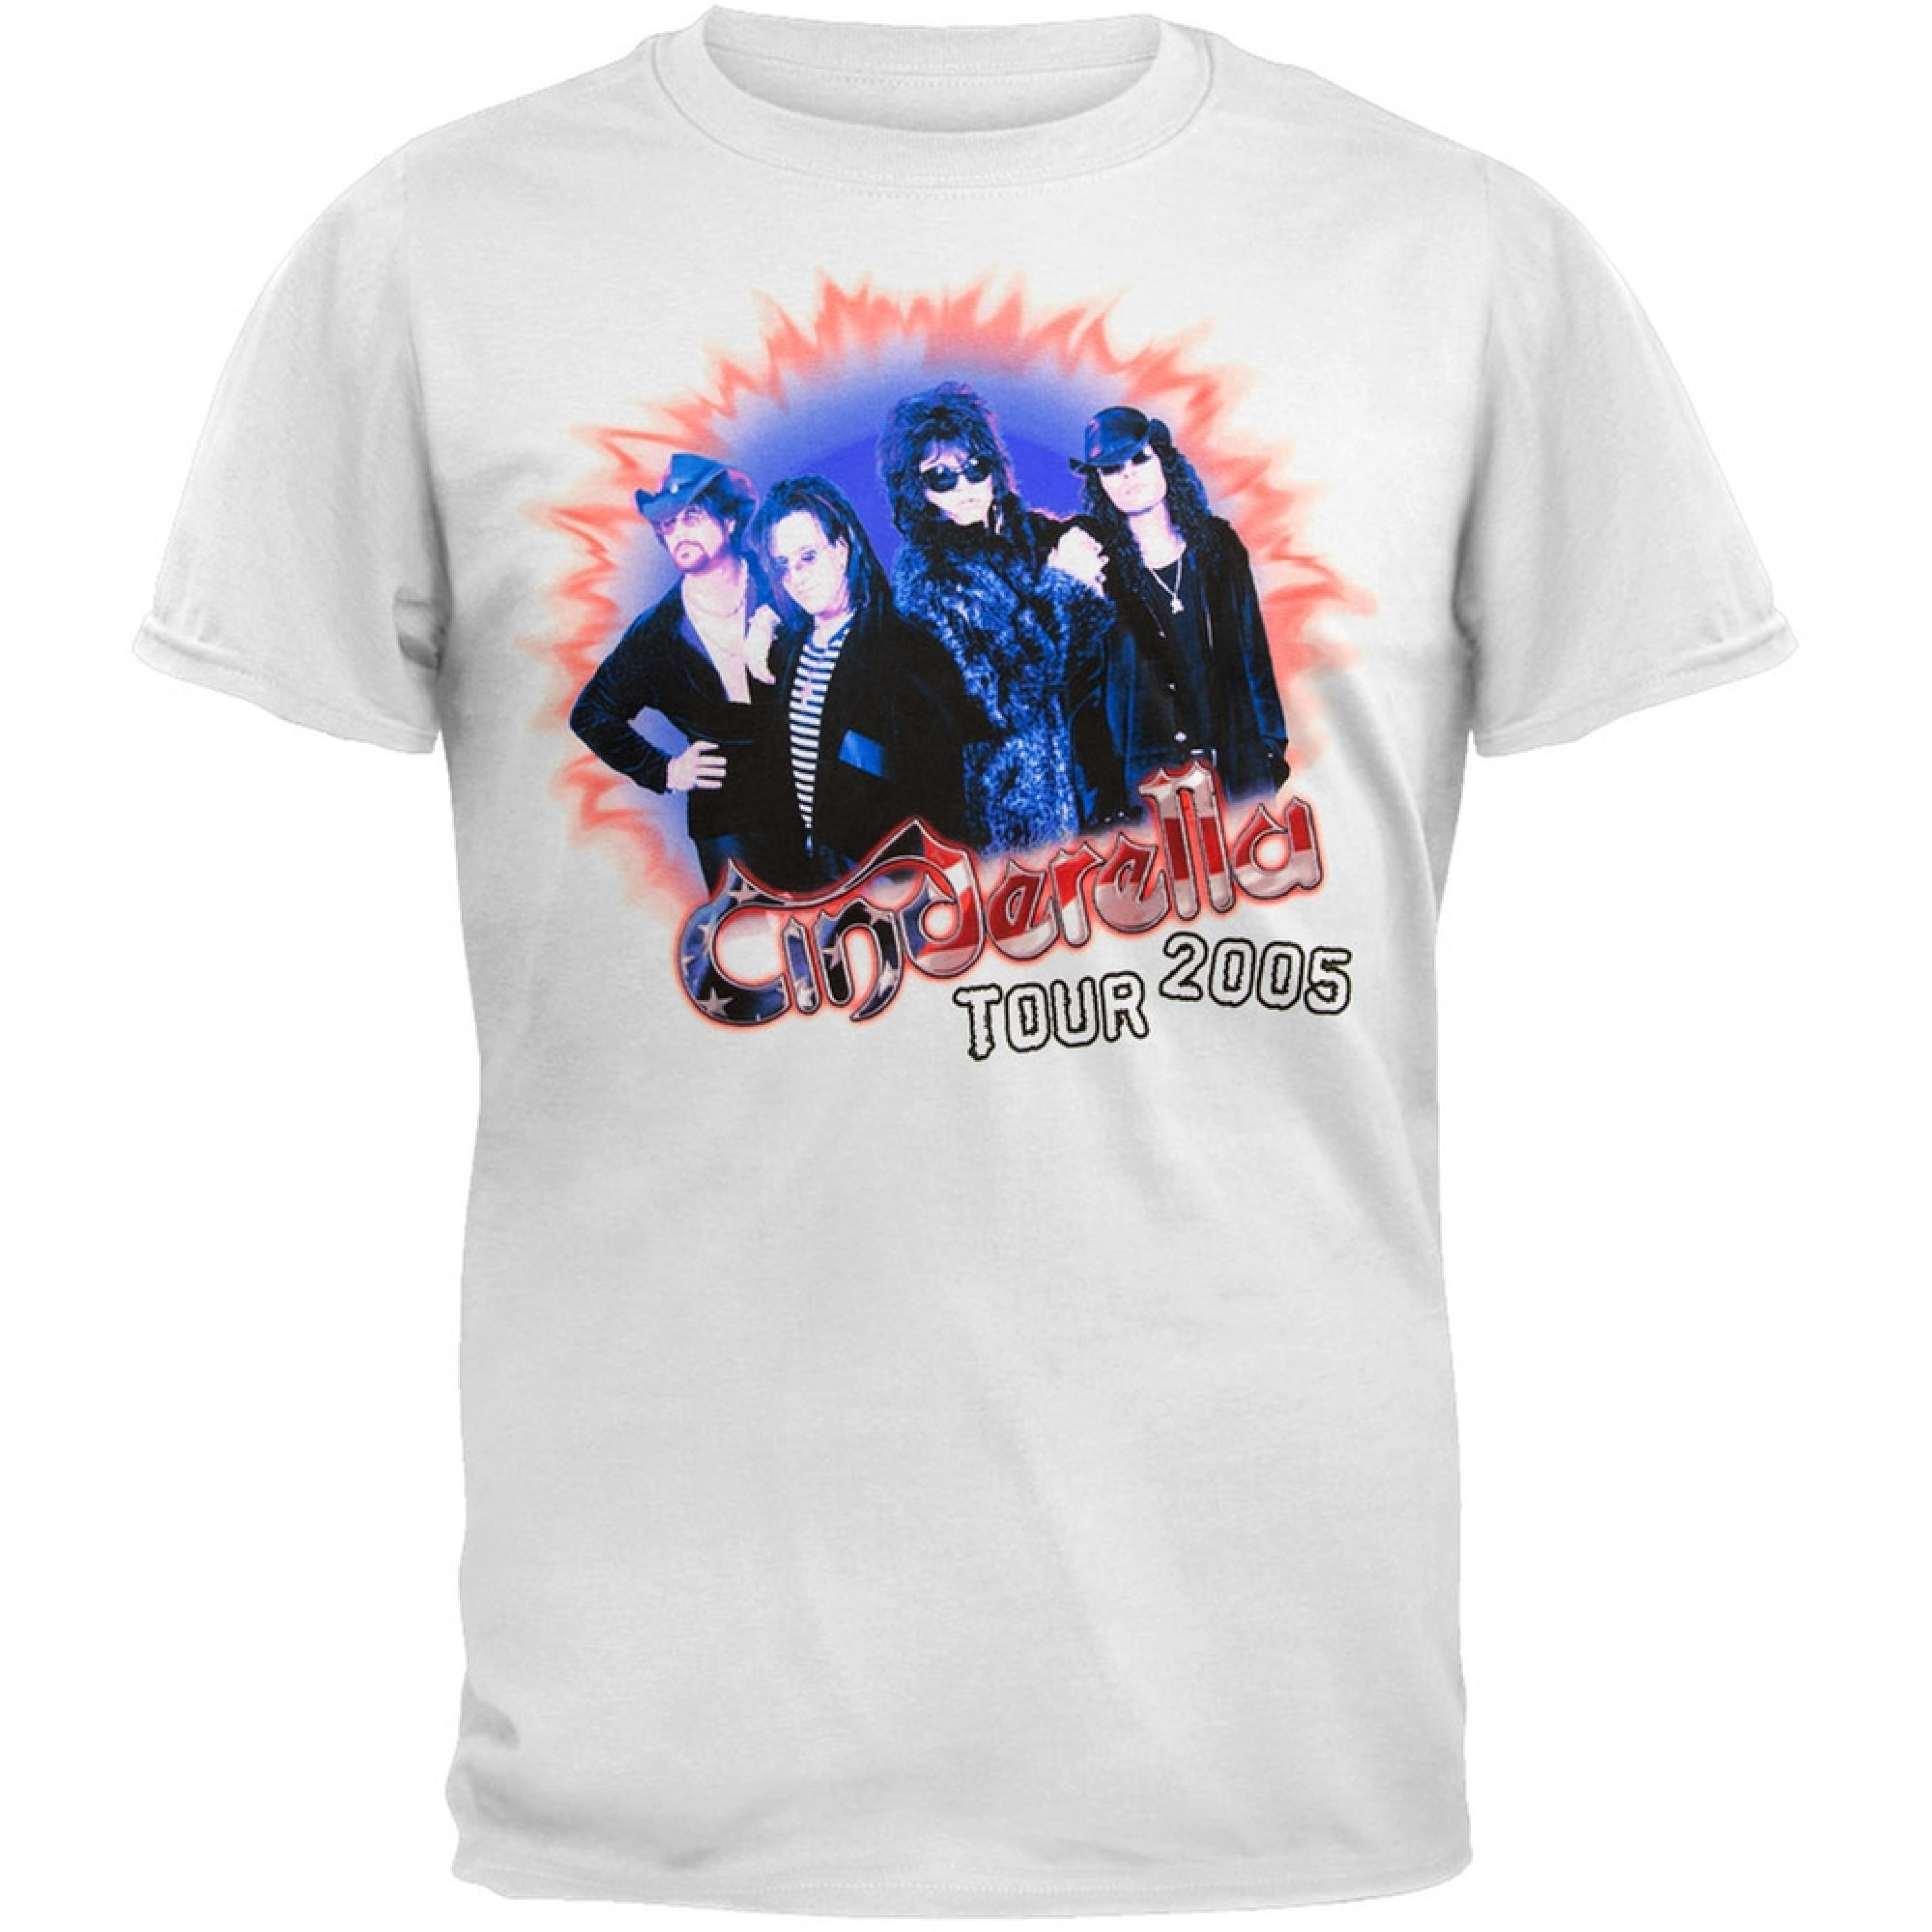 Cinderella - Shades 05 Tour T-Shirt